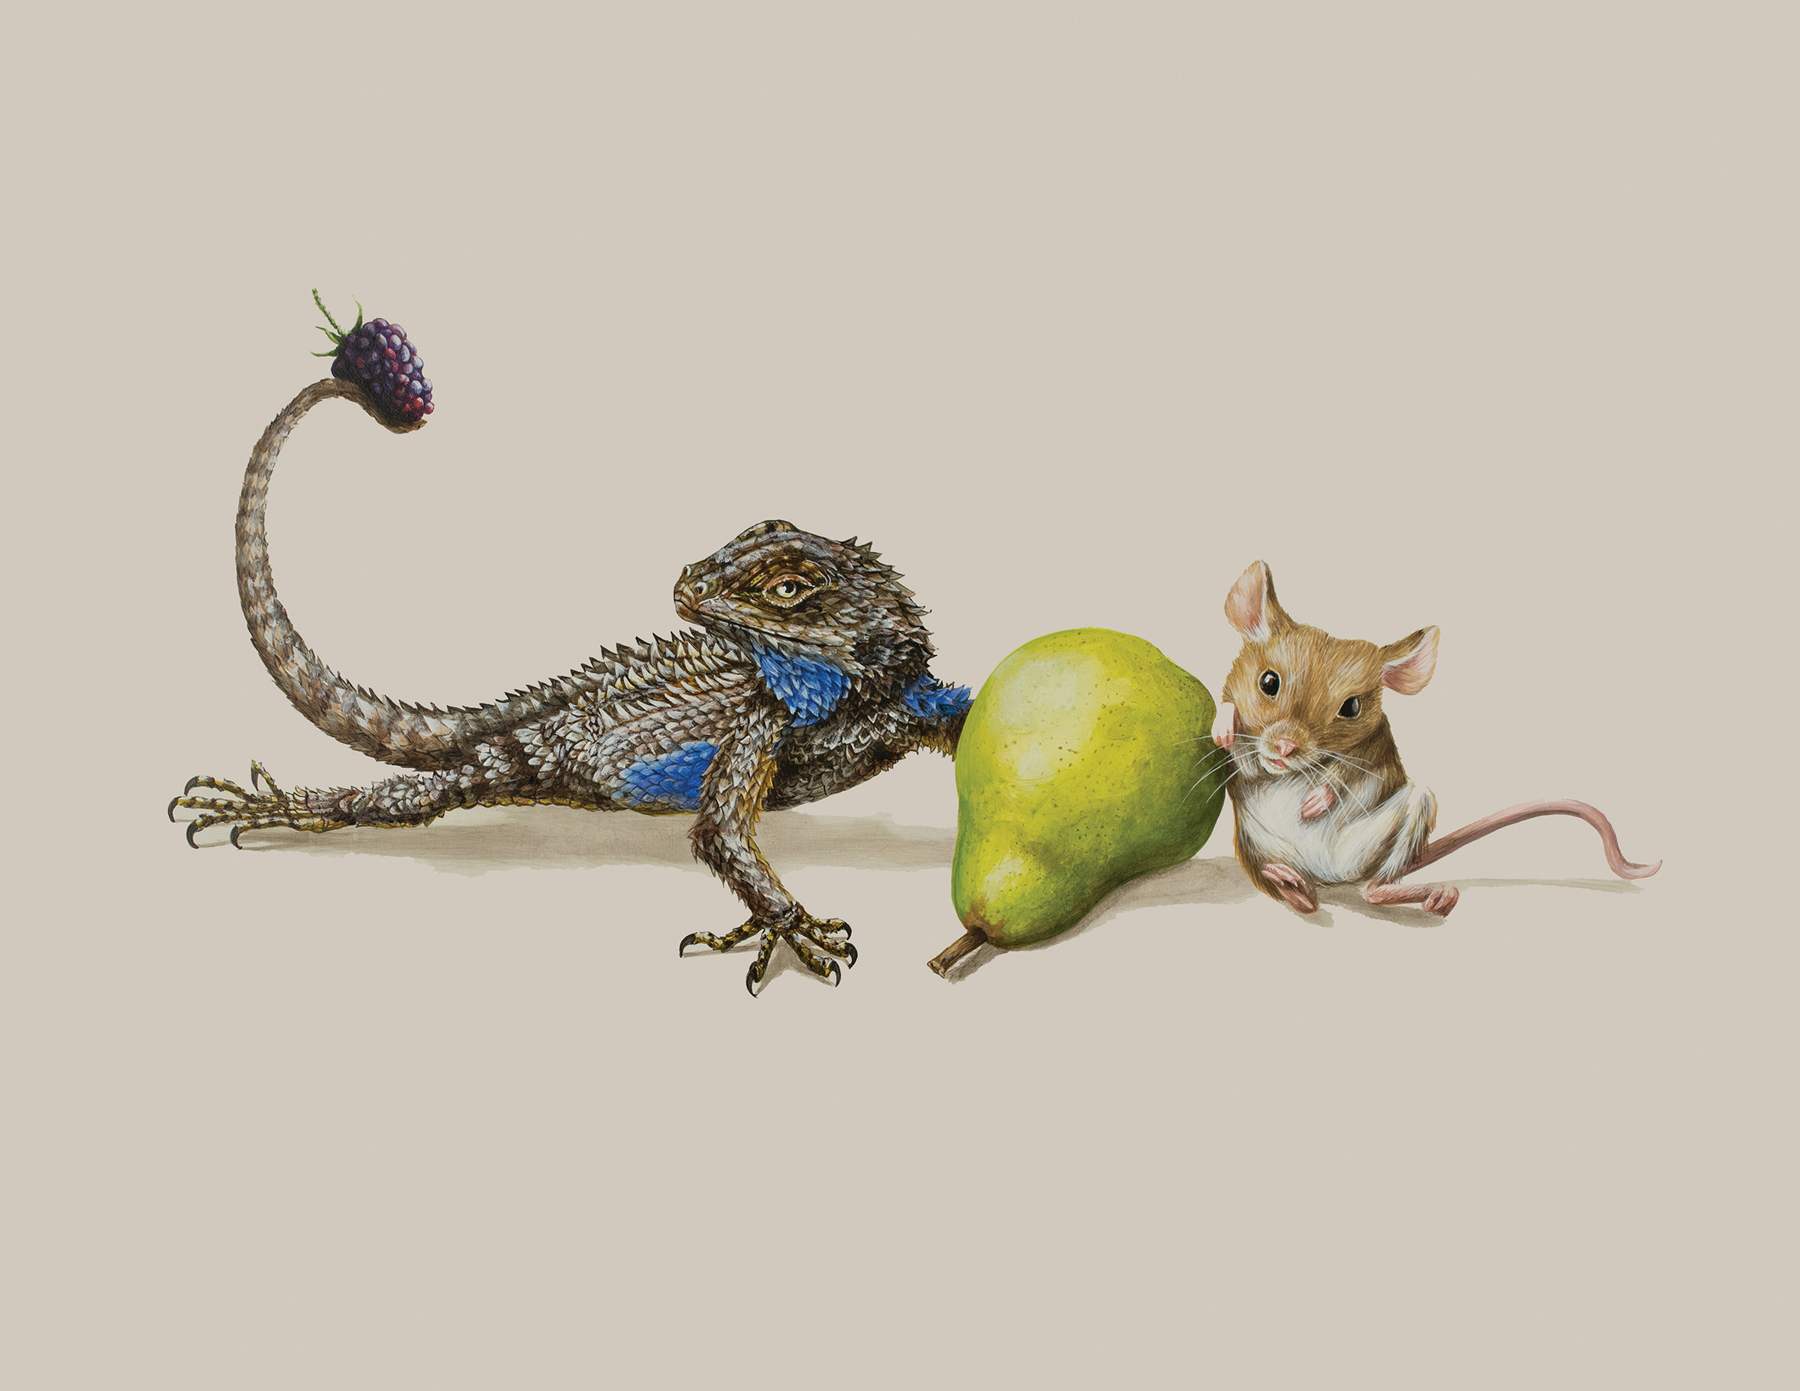 Tricia George: The Bluebellied Lizard and The Mouse